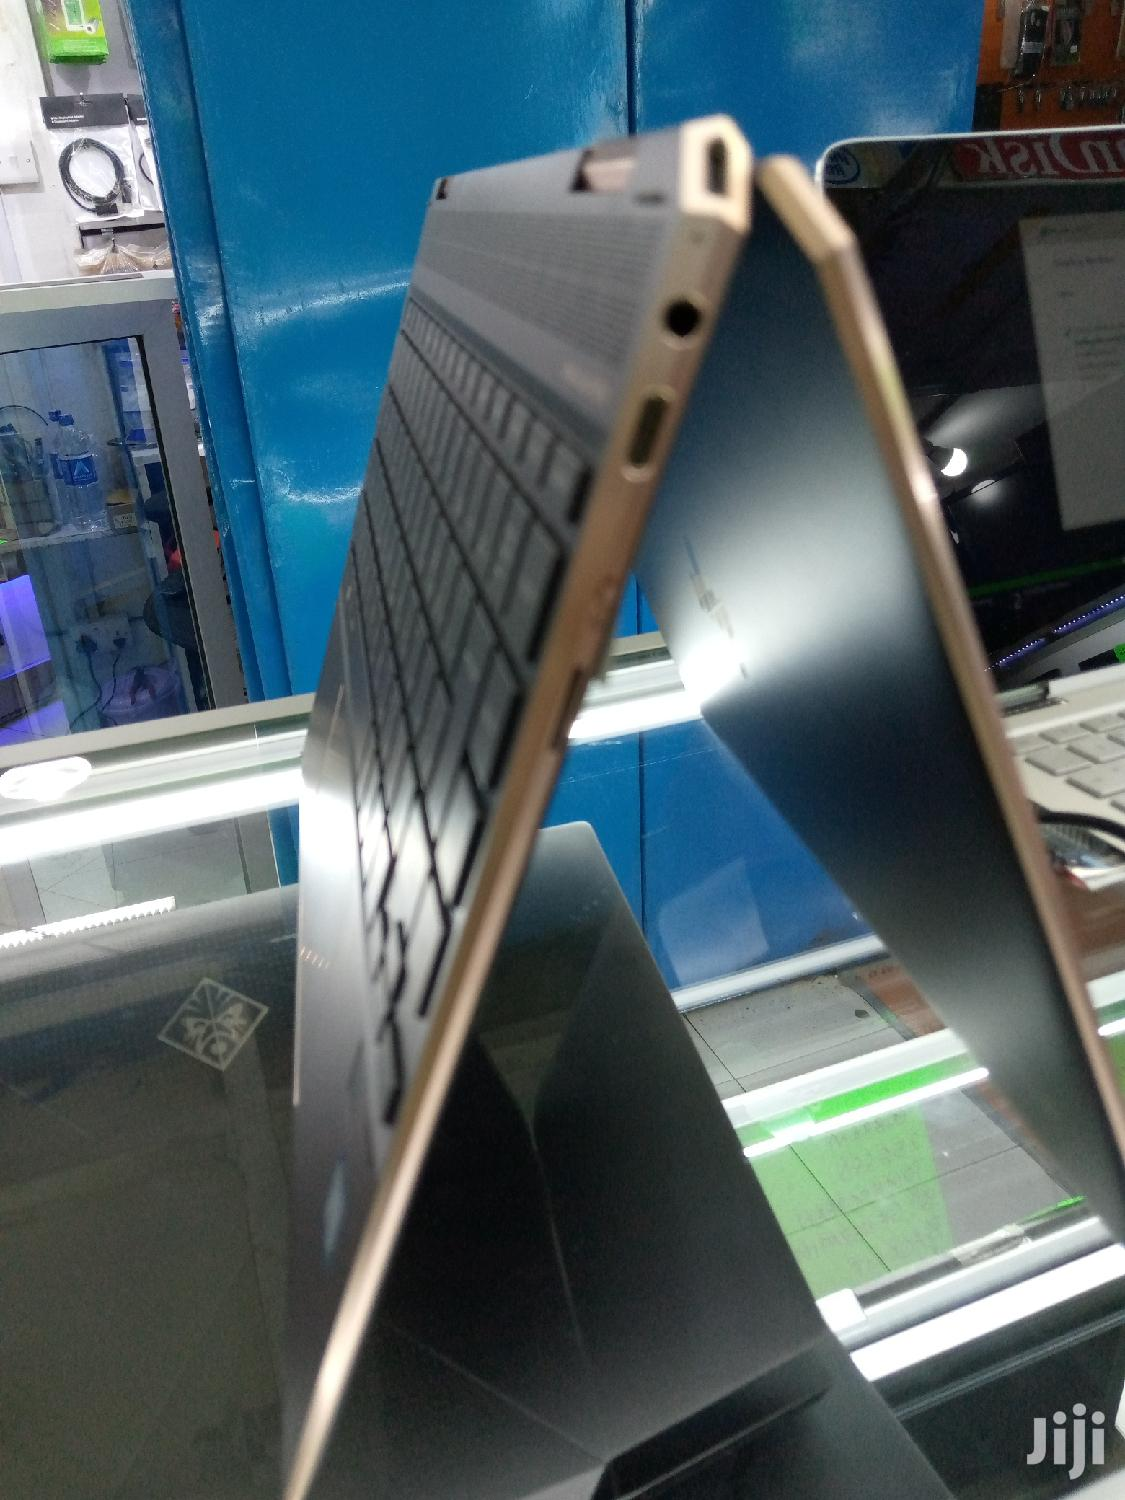 New Laptop HP Spectre X360 13 16GB Intel Core i7 SSD 512GB | Laptops & Computers for sale in Nairobi Central, Nairobi, Kenya